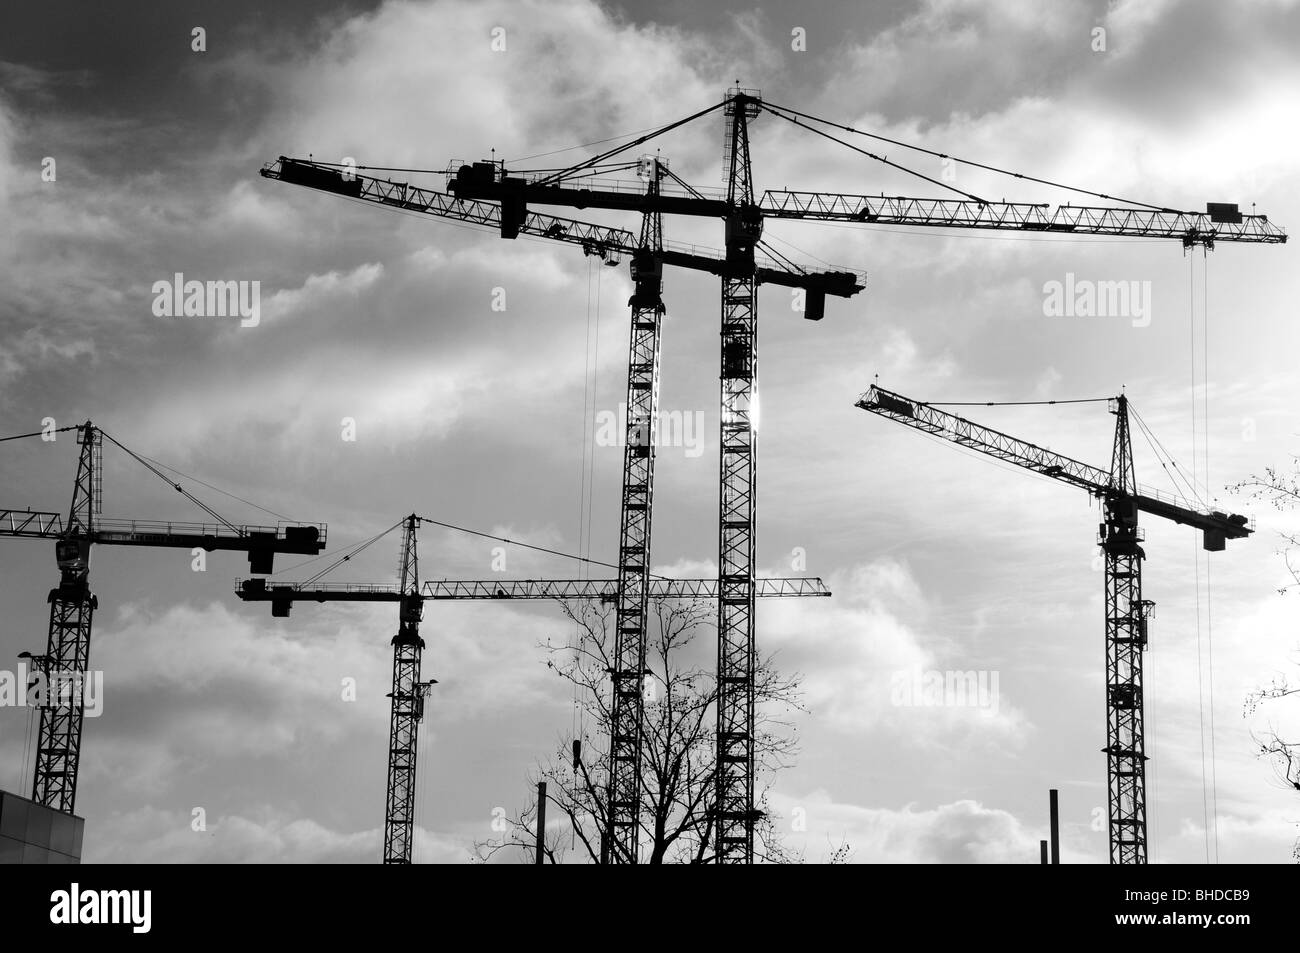 Several construction cranes on a building site signifying economic growth and rising industrial activity - Stock Image